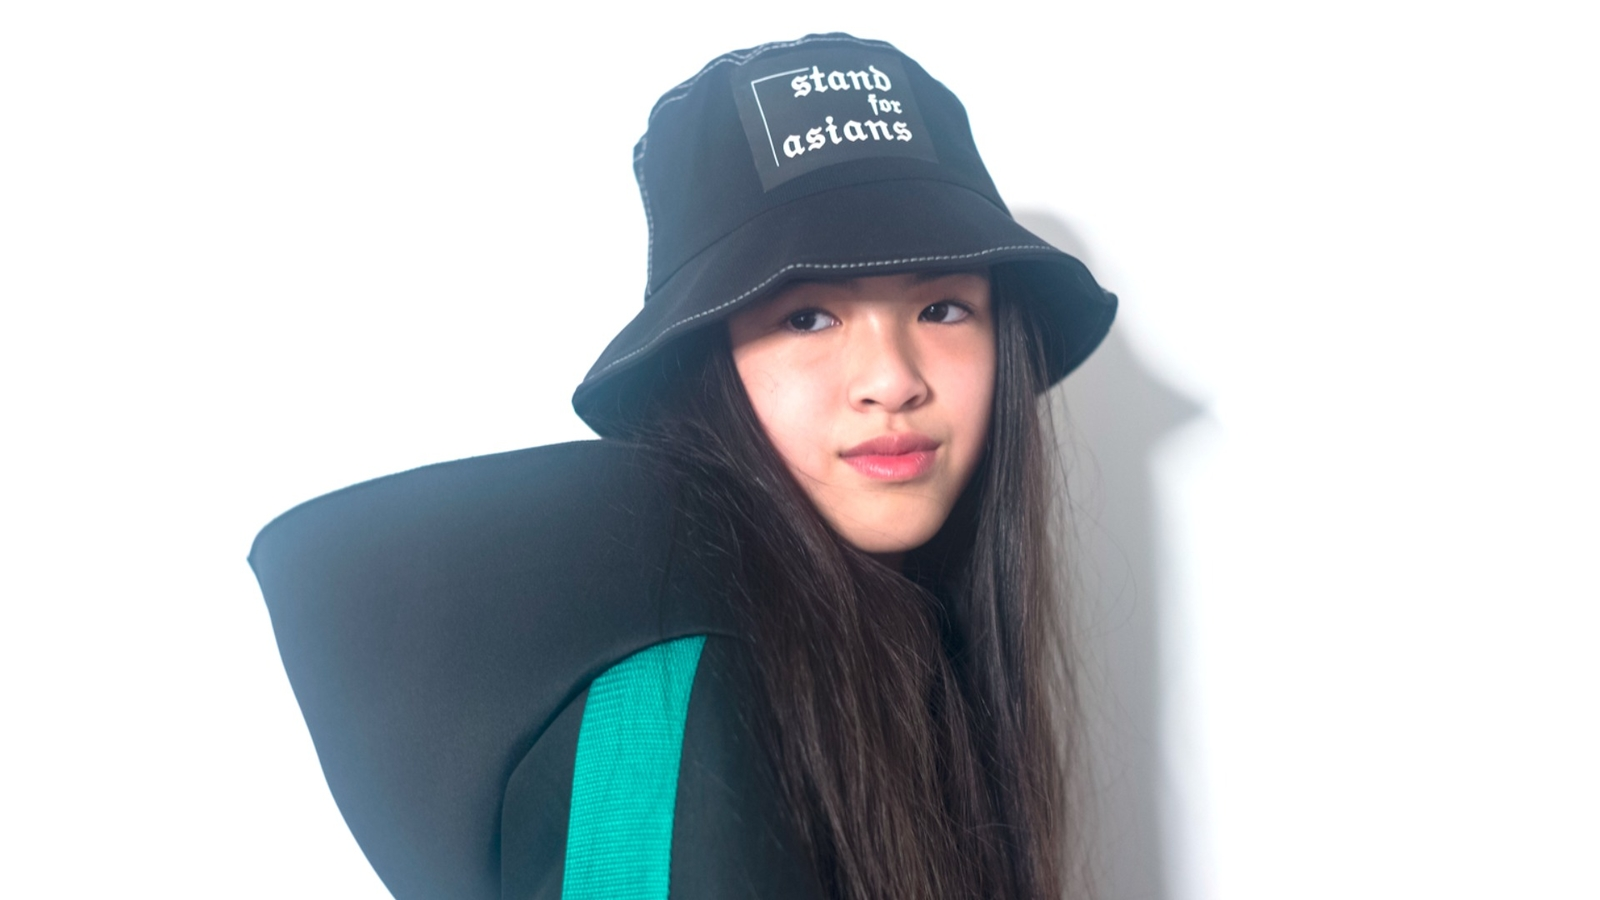 abc7chicago.com: 13-year-old fashion designer Ashlyn So leads Asian American activism in Bay Area